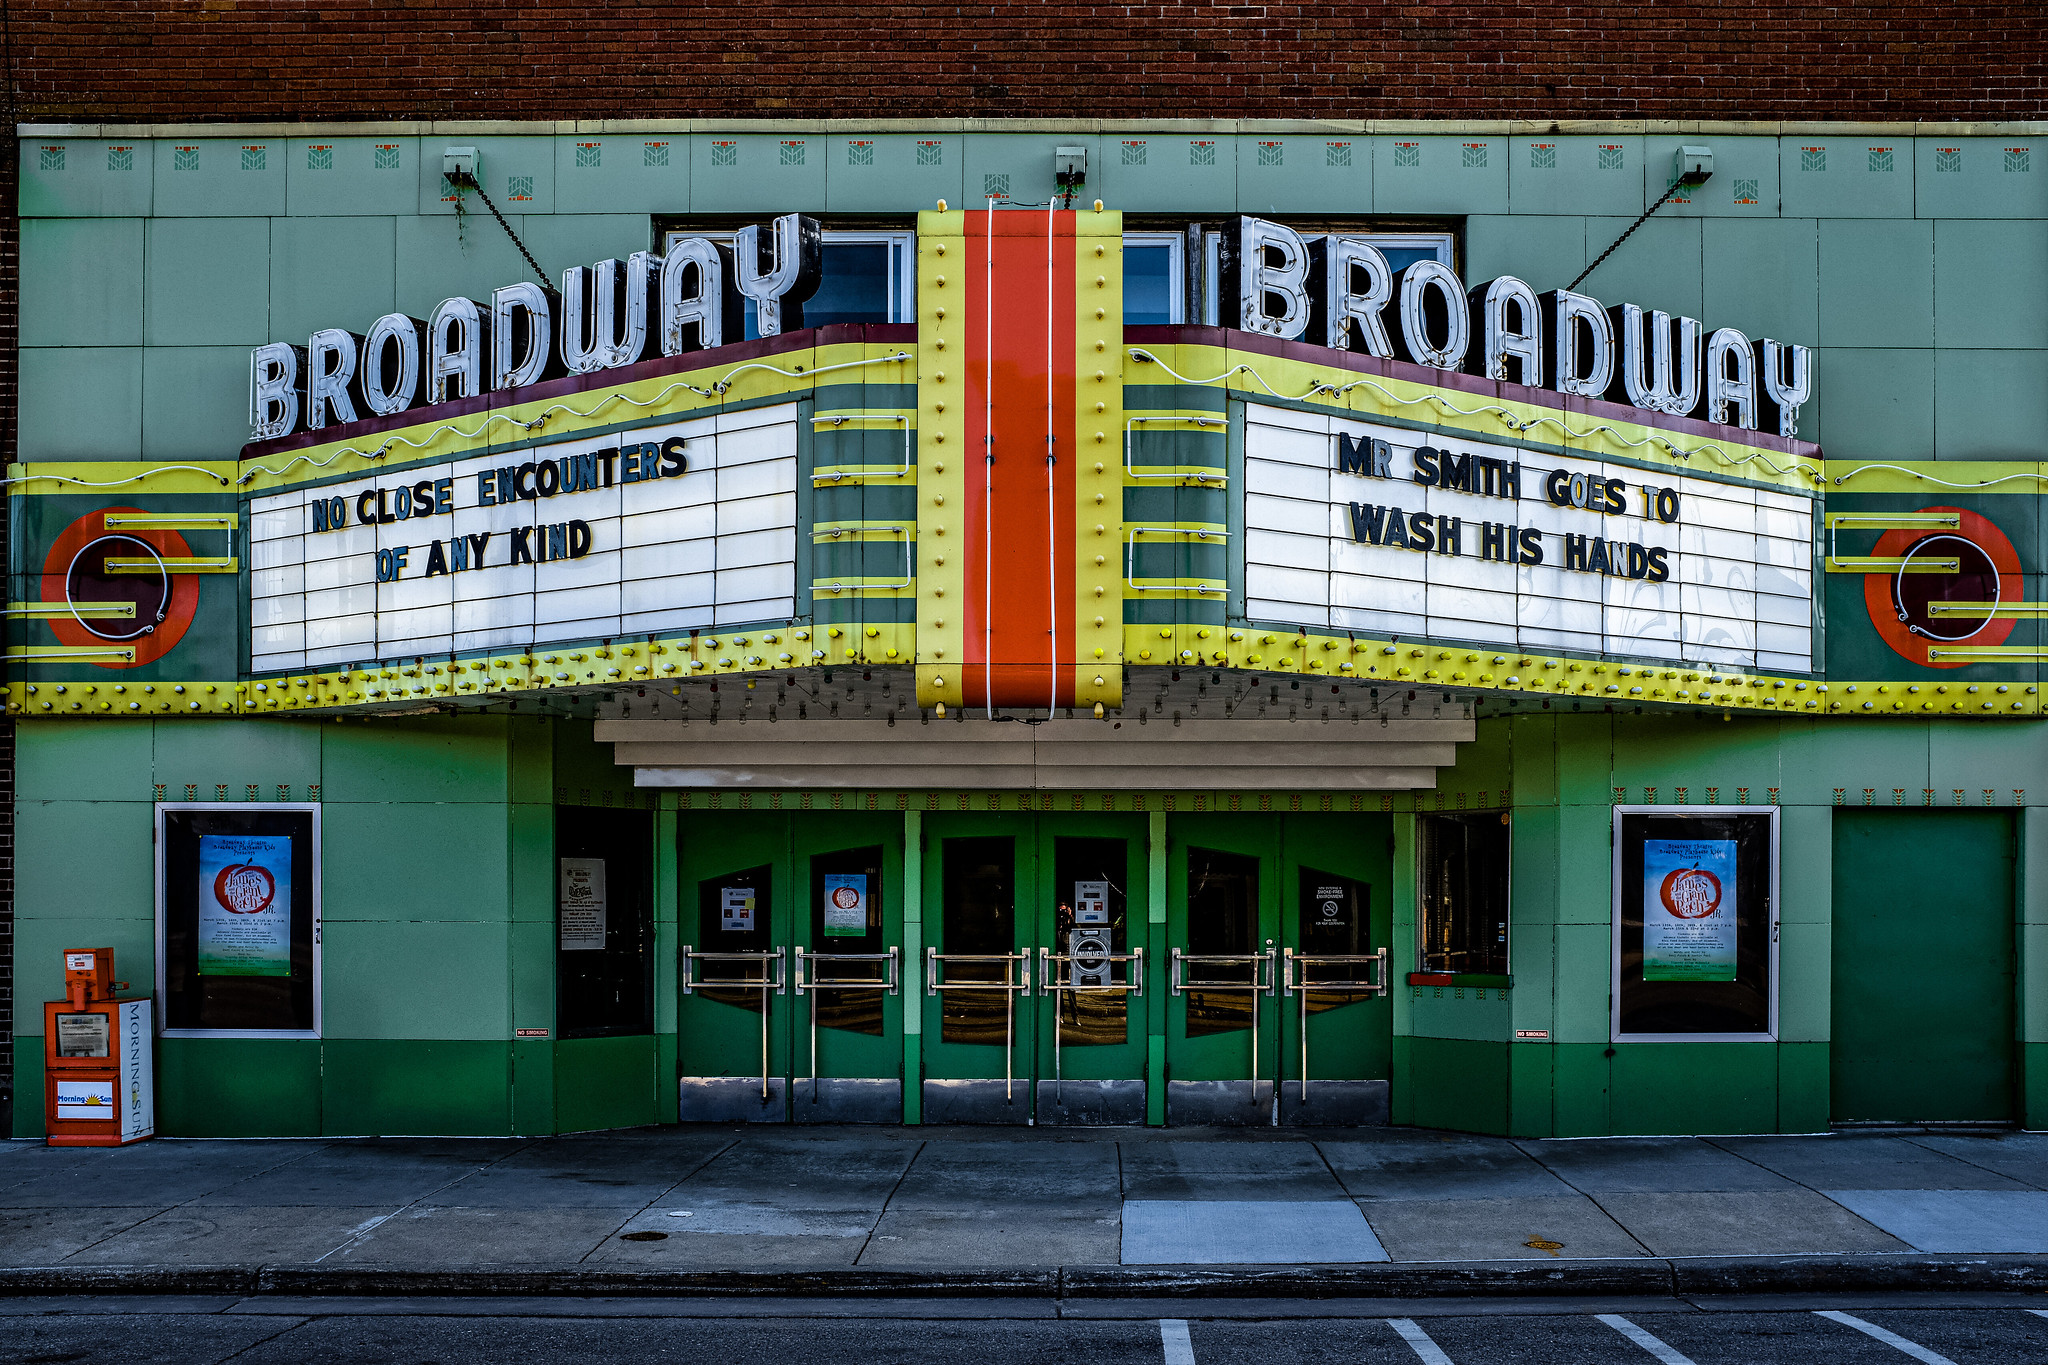 Photo of the front of a theatre.   Closed during the COVID-19 pandemic, Mt. Pleasant's Broadway Theatre uses its marquee to spread a (comedic) message in support of social distancing and hand washing